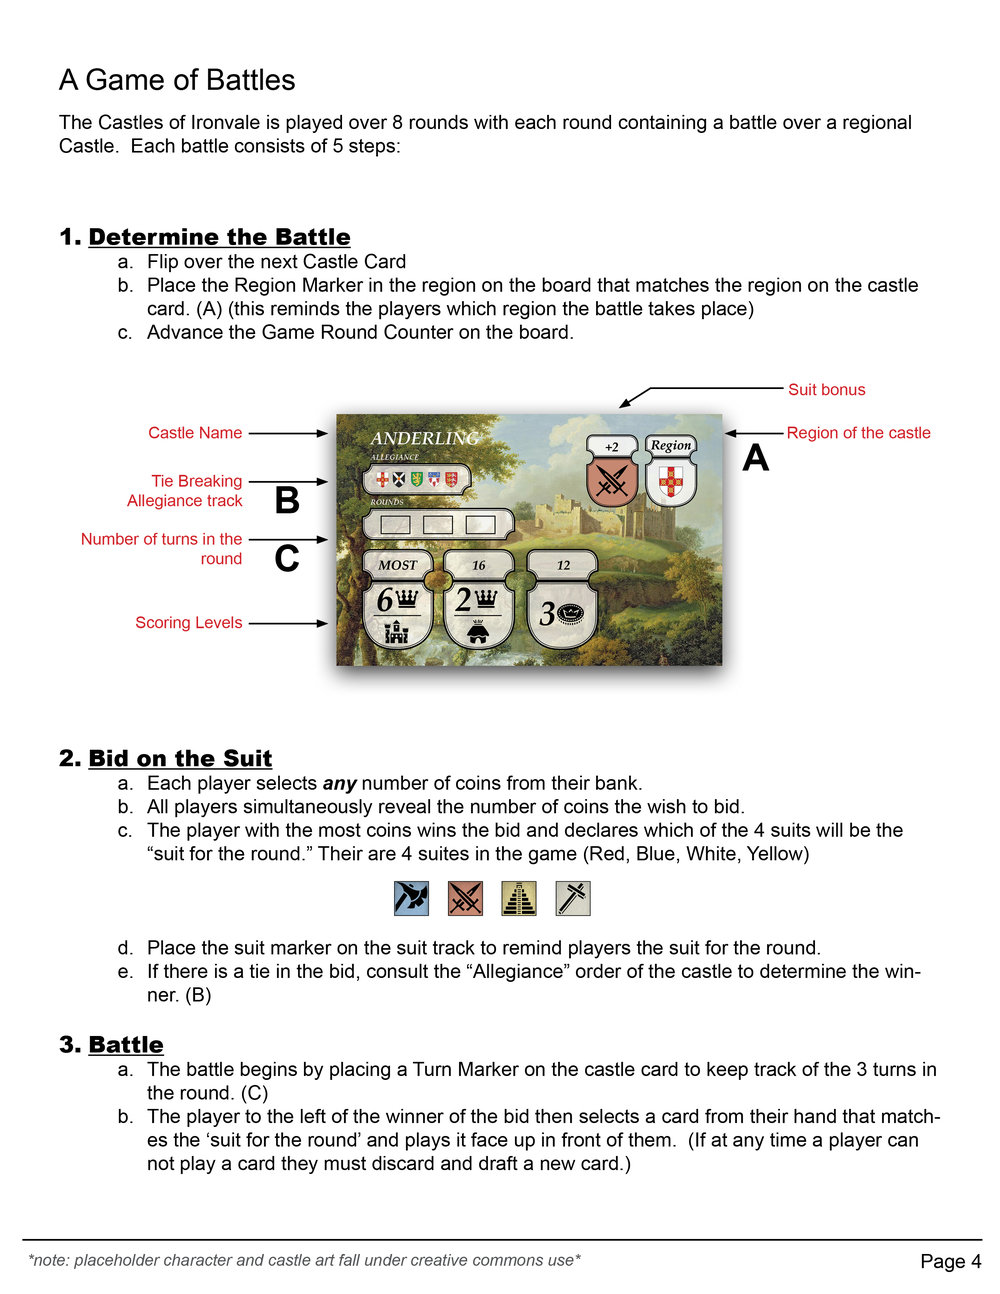 Castles of Ironvale Rulebook4.jpg